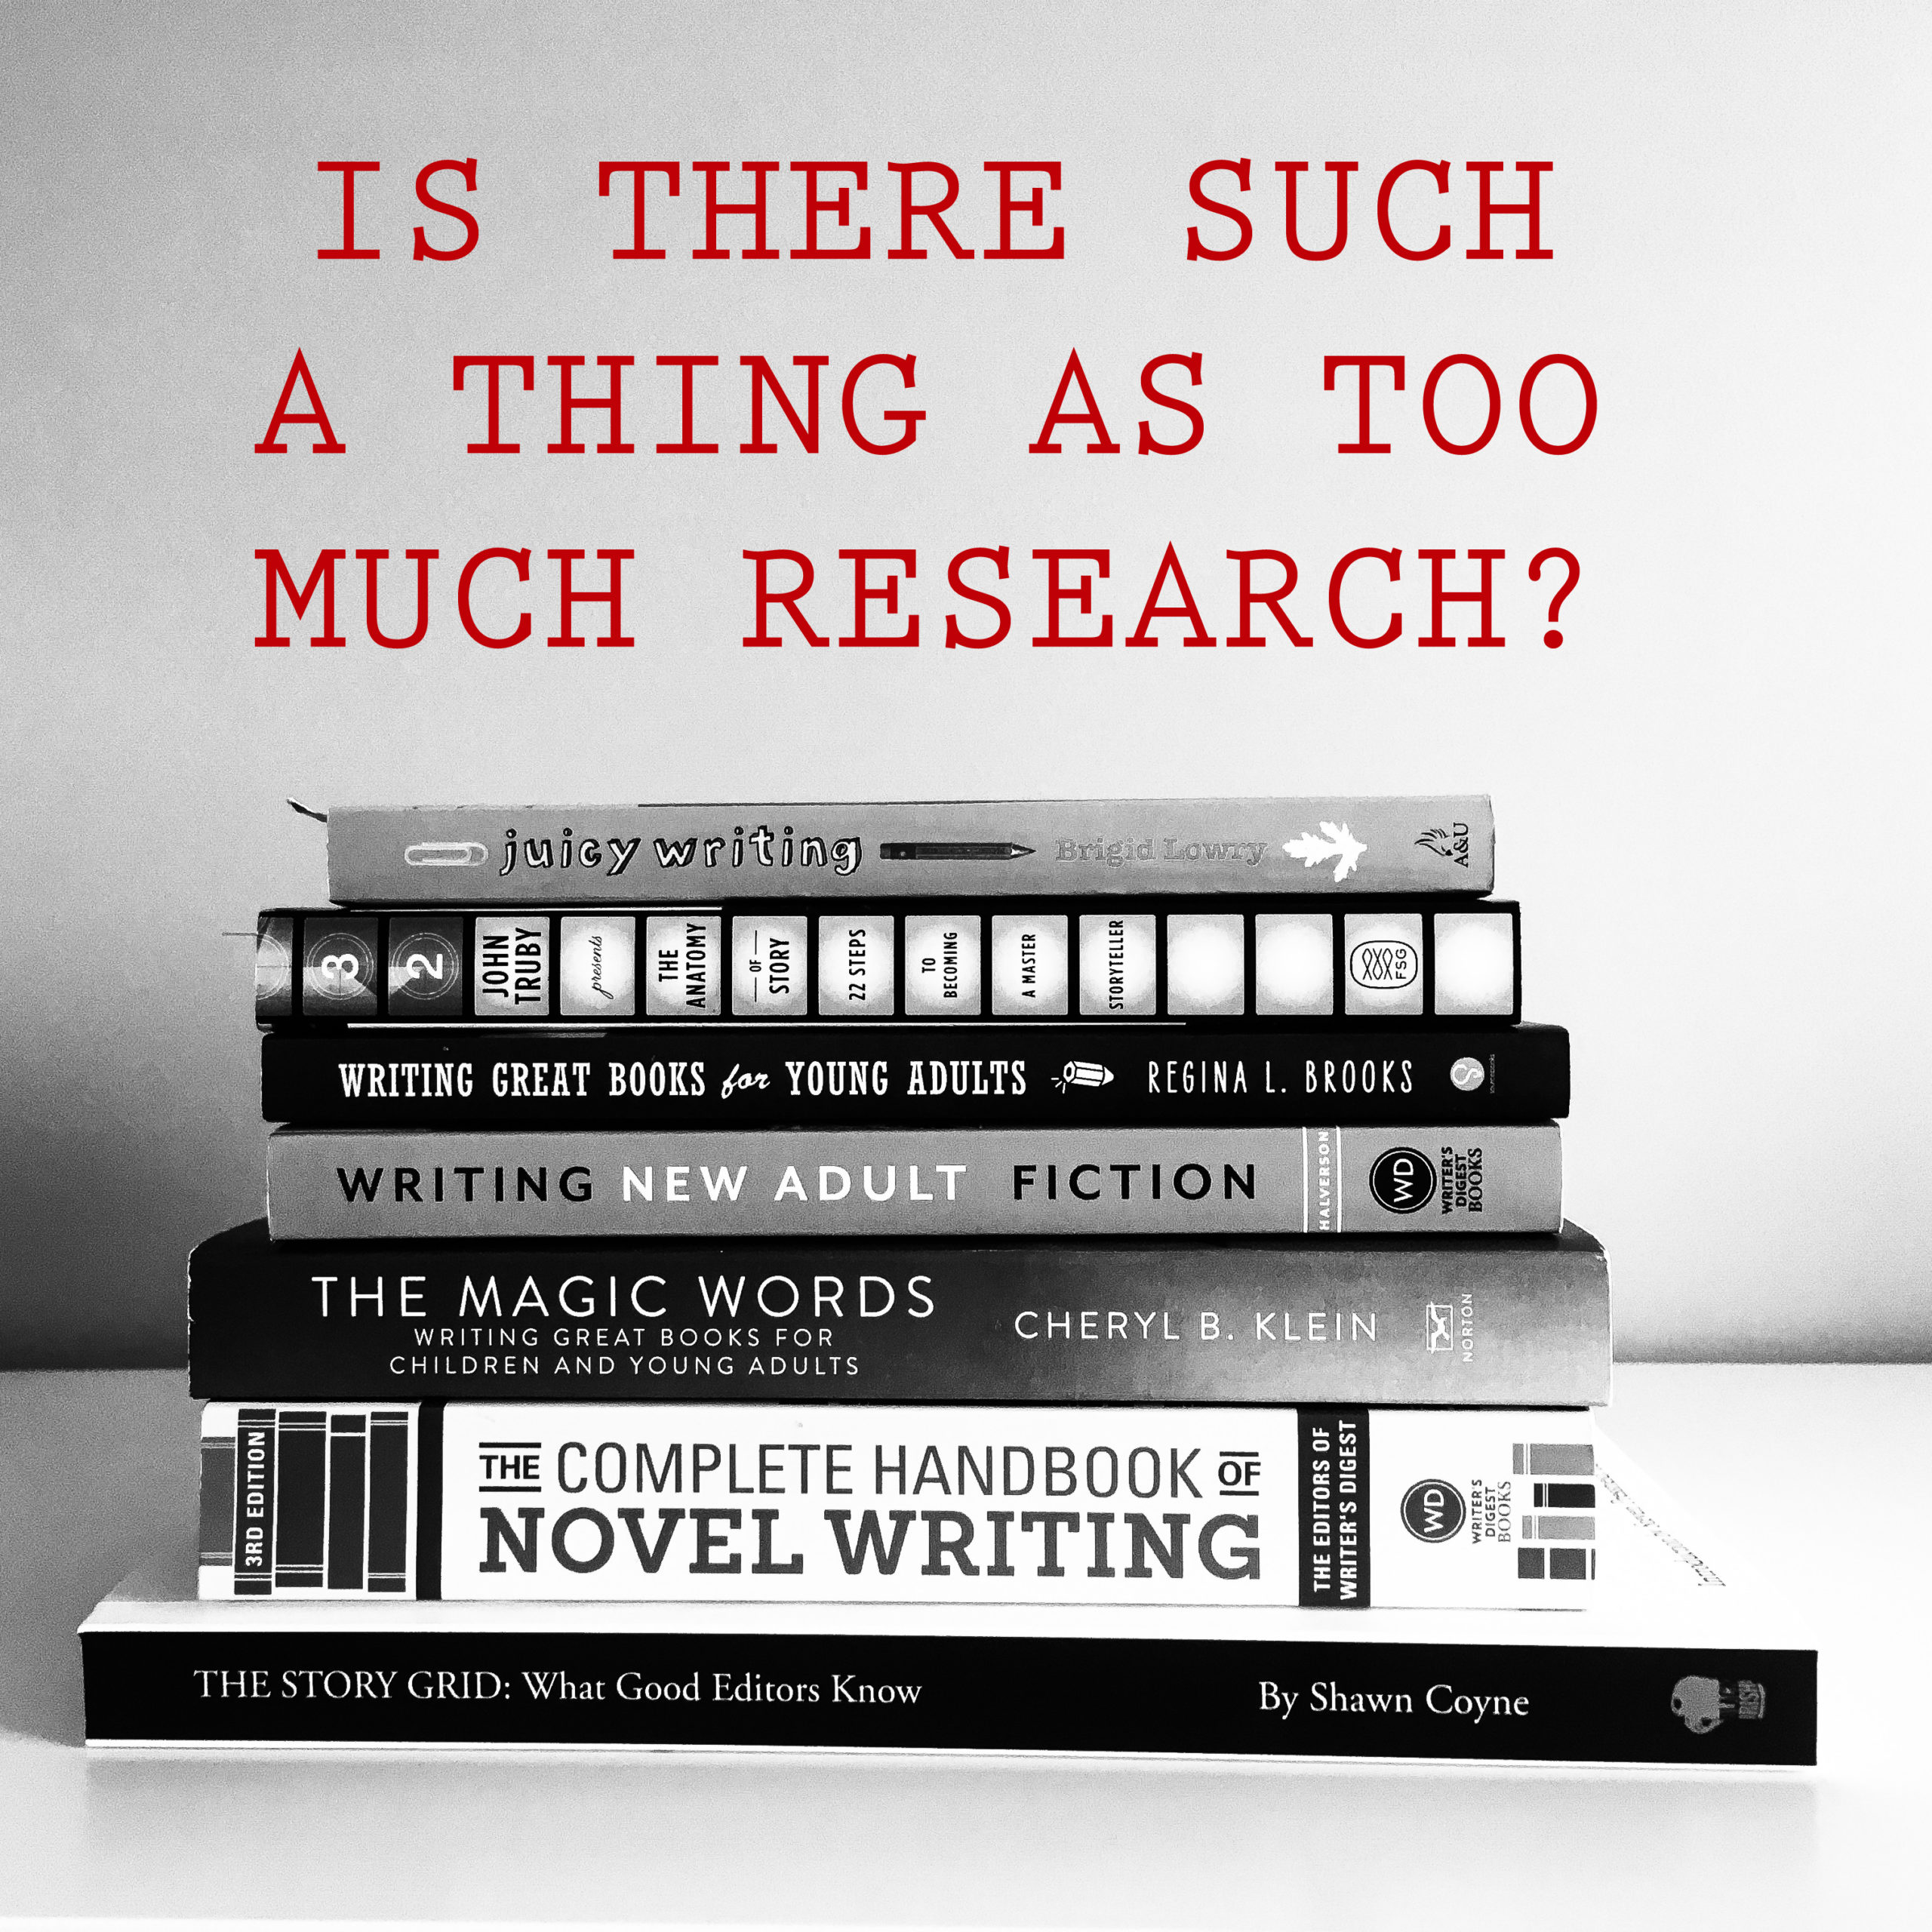 Is there such a thing as too much research? This phrase is written on the top half of the image. Below there is stacked a variety of books on writing.